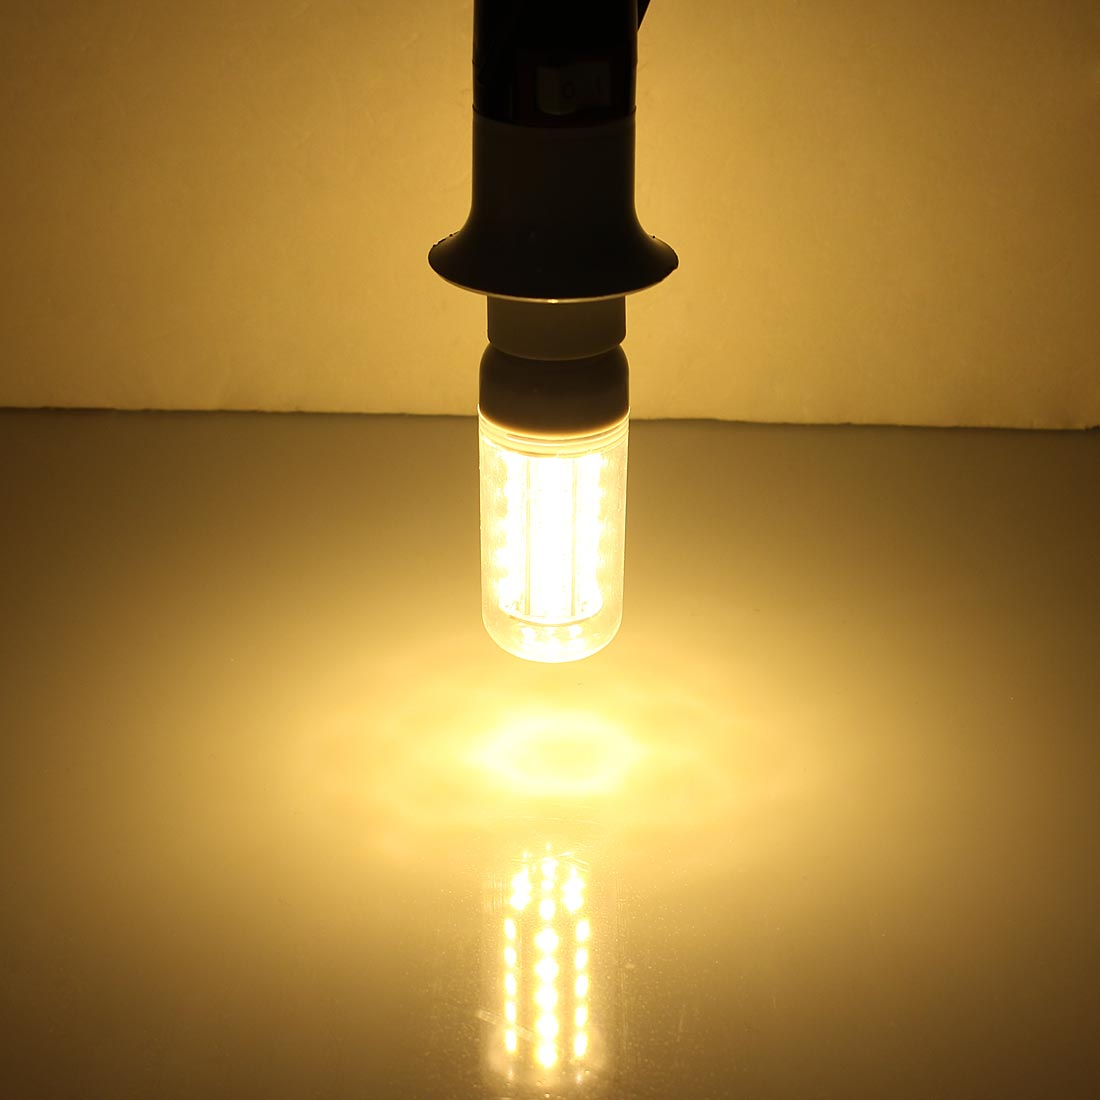 E14 7W LED 36 SMD 5730 Corn Light Lamp Bulbs 220V